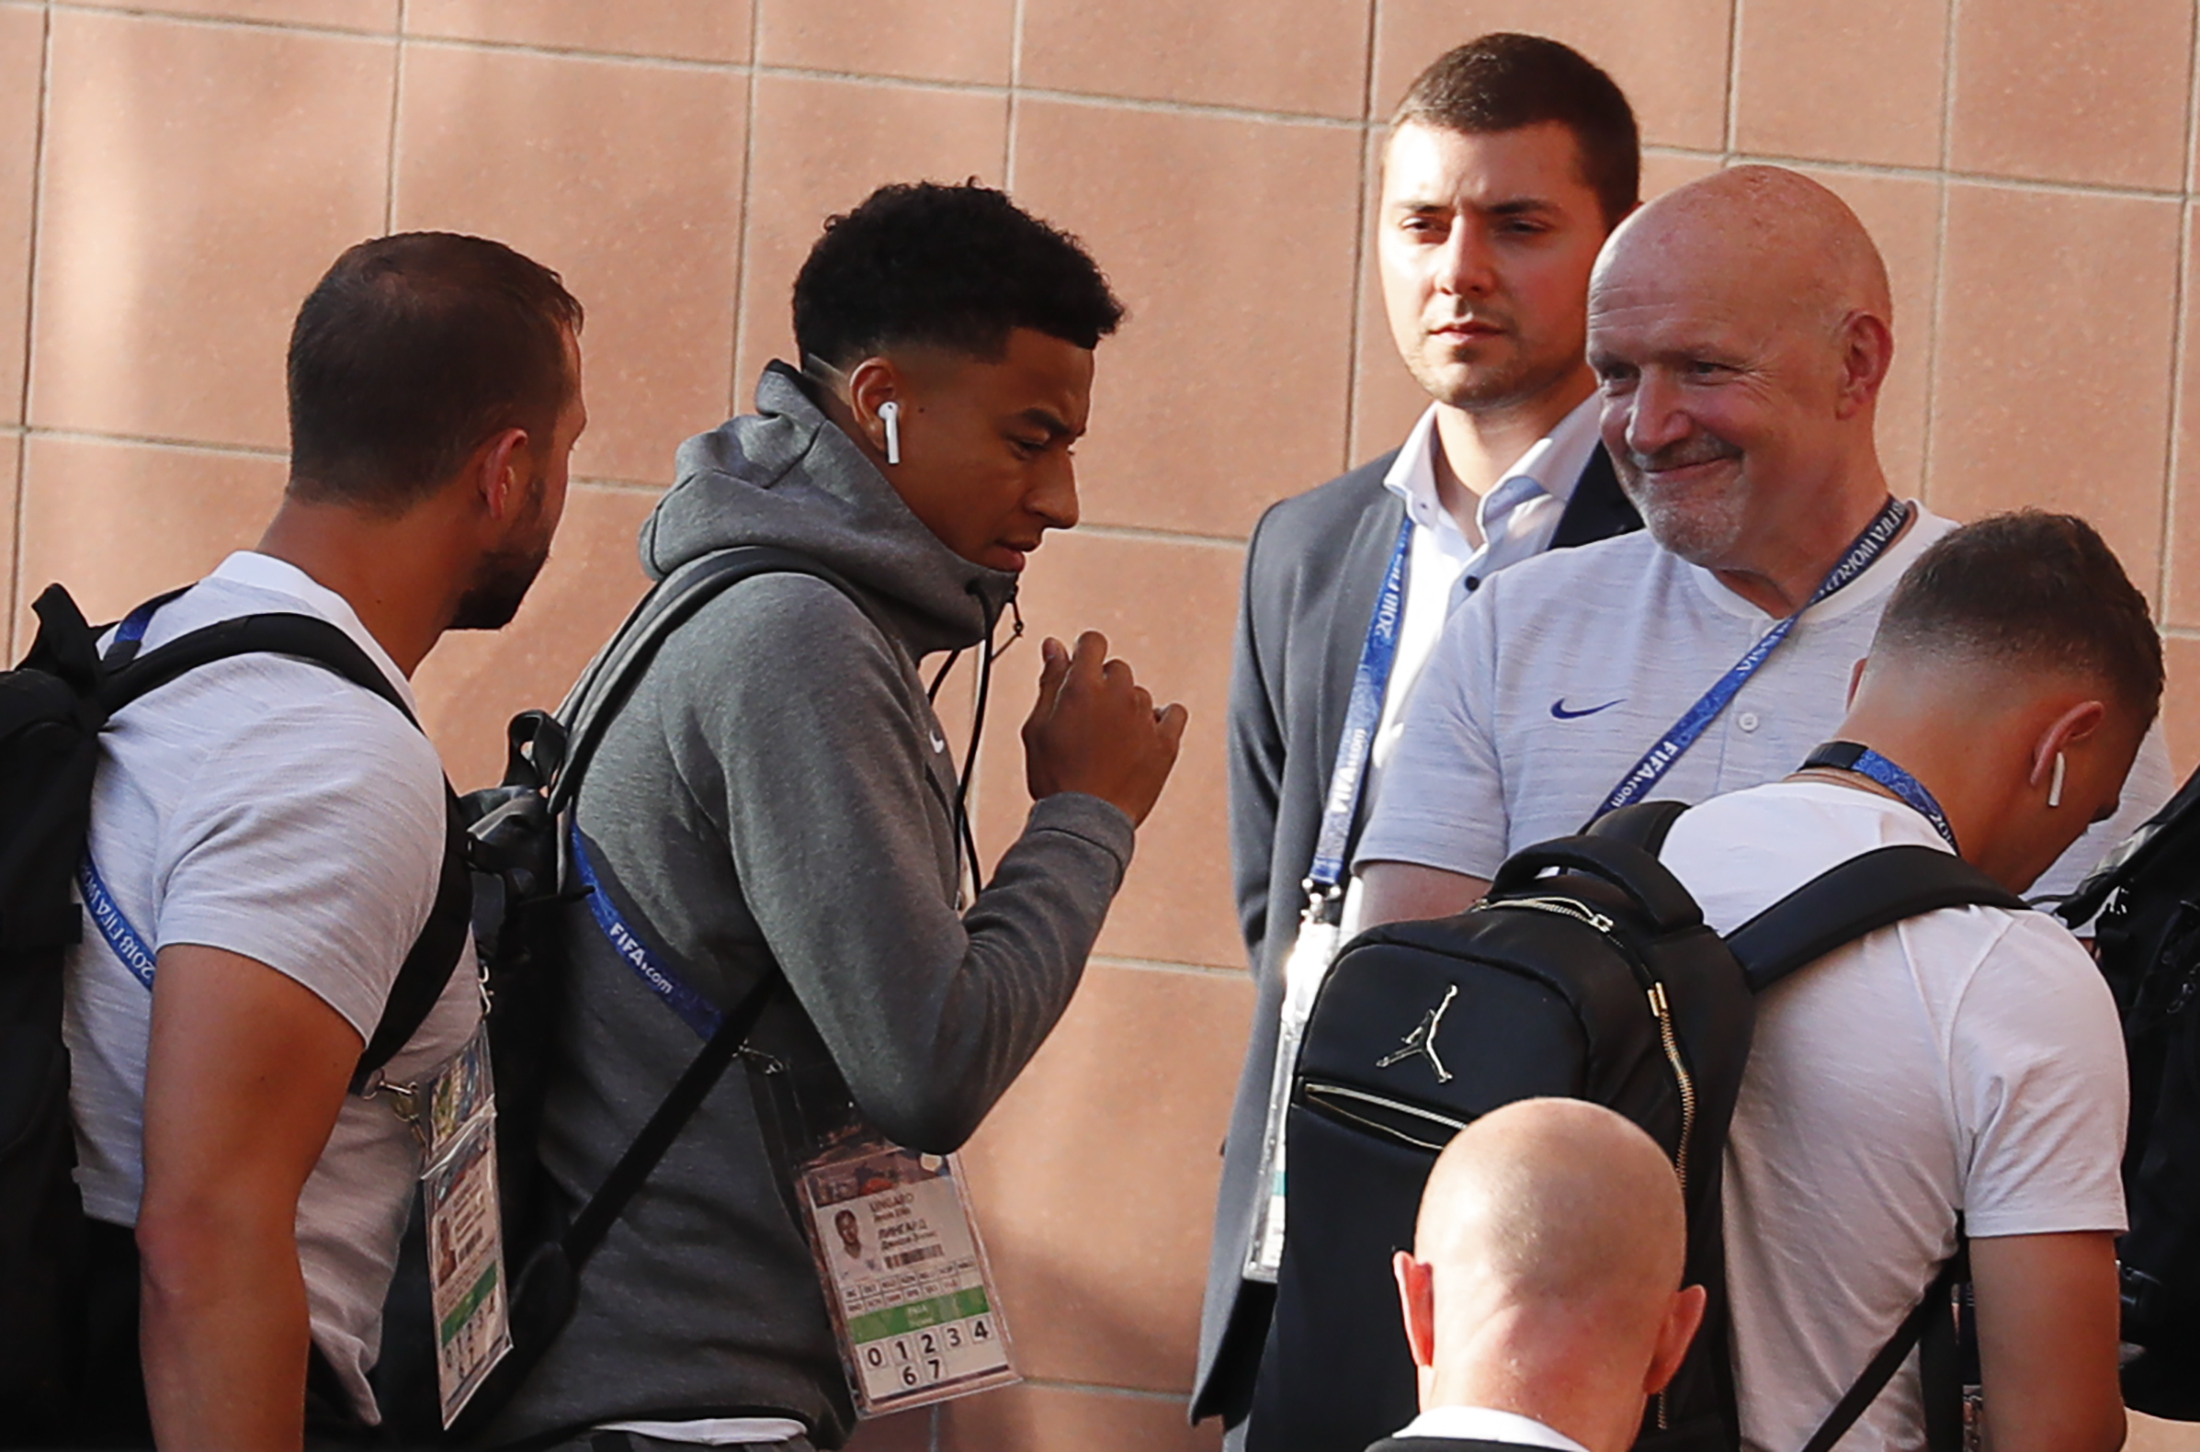 Soccer Football - World Cup - England Arrival - Samara, Russia - July 6, 2018. Jesse Lingard and other team members arrive at a hotel. REUTERS/David Gray - UP1EE7619PPGU